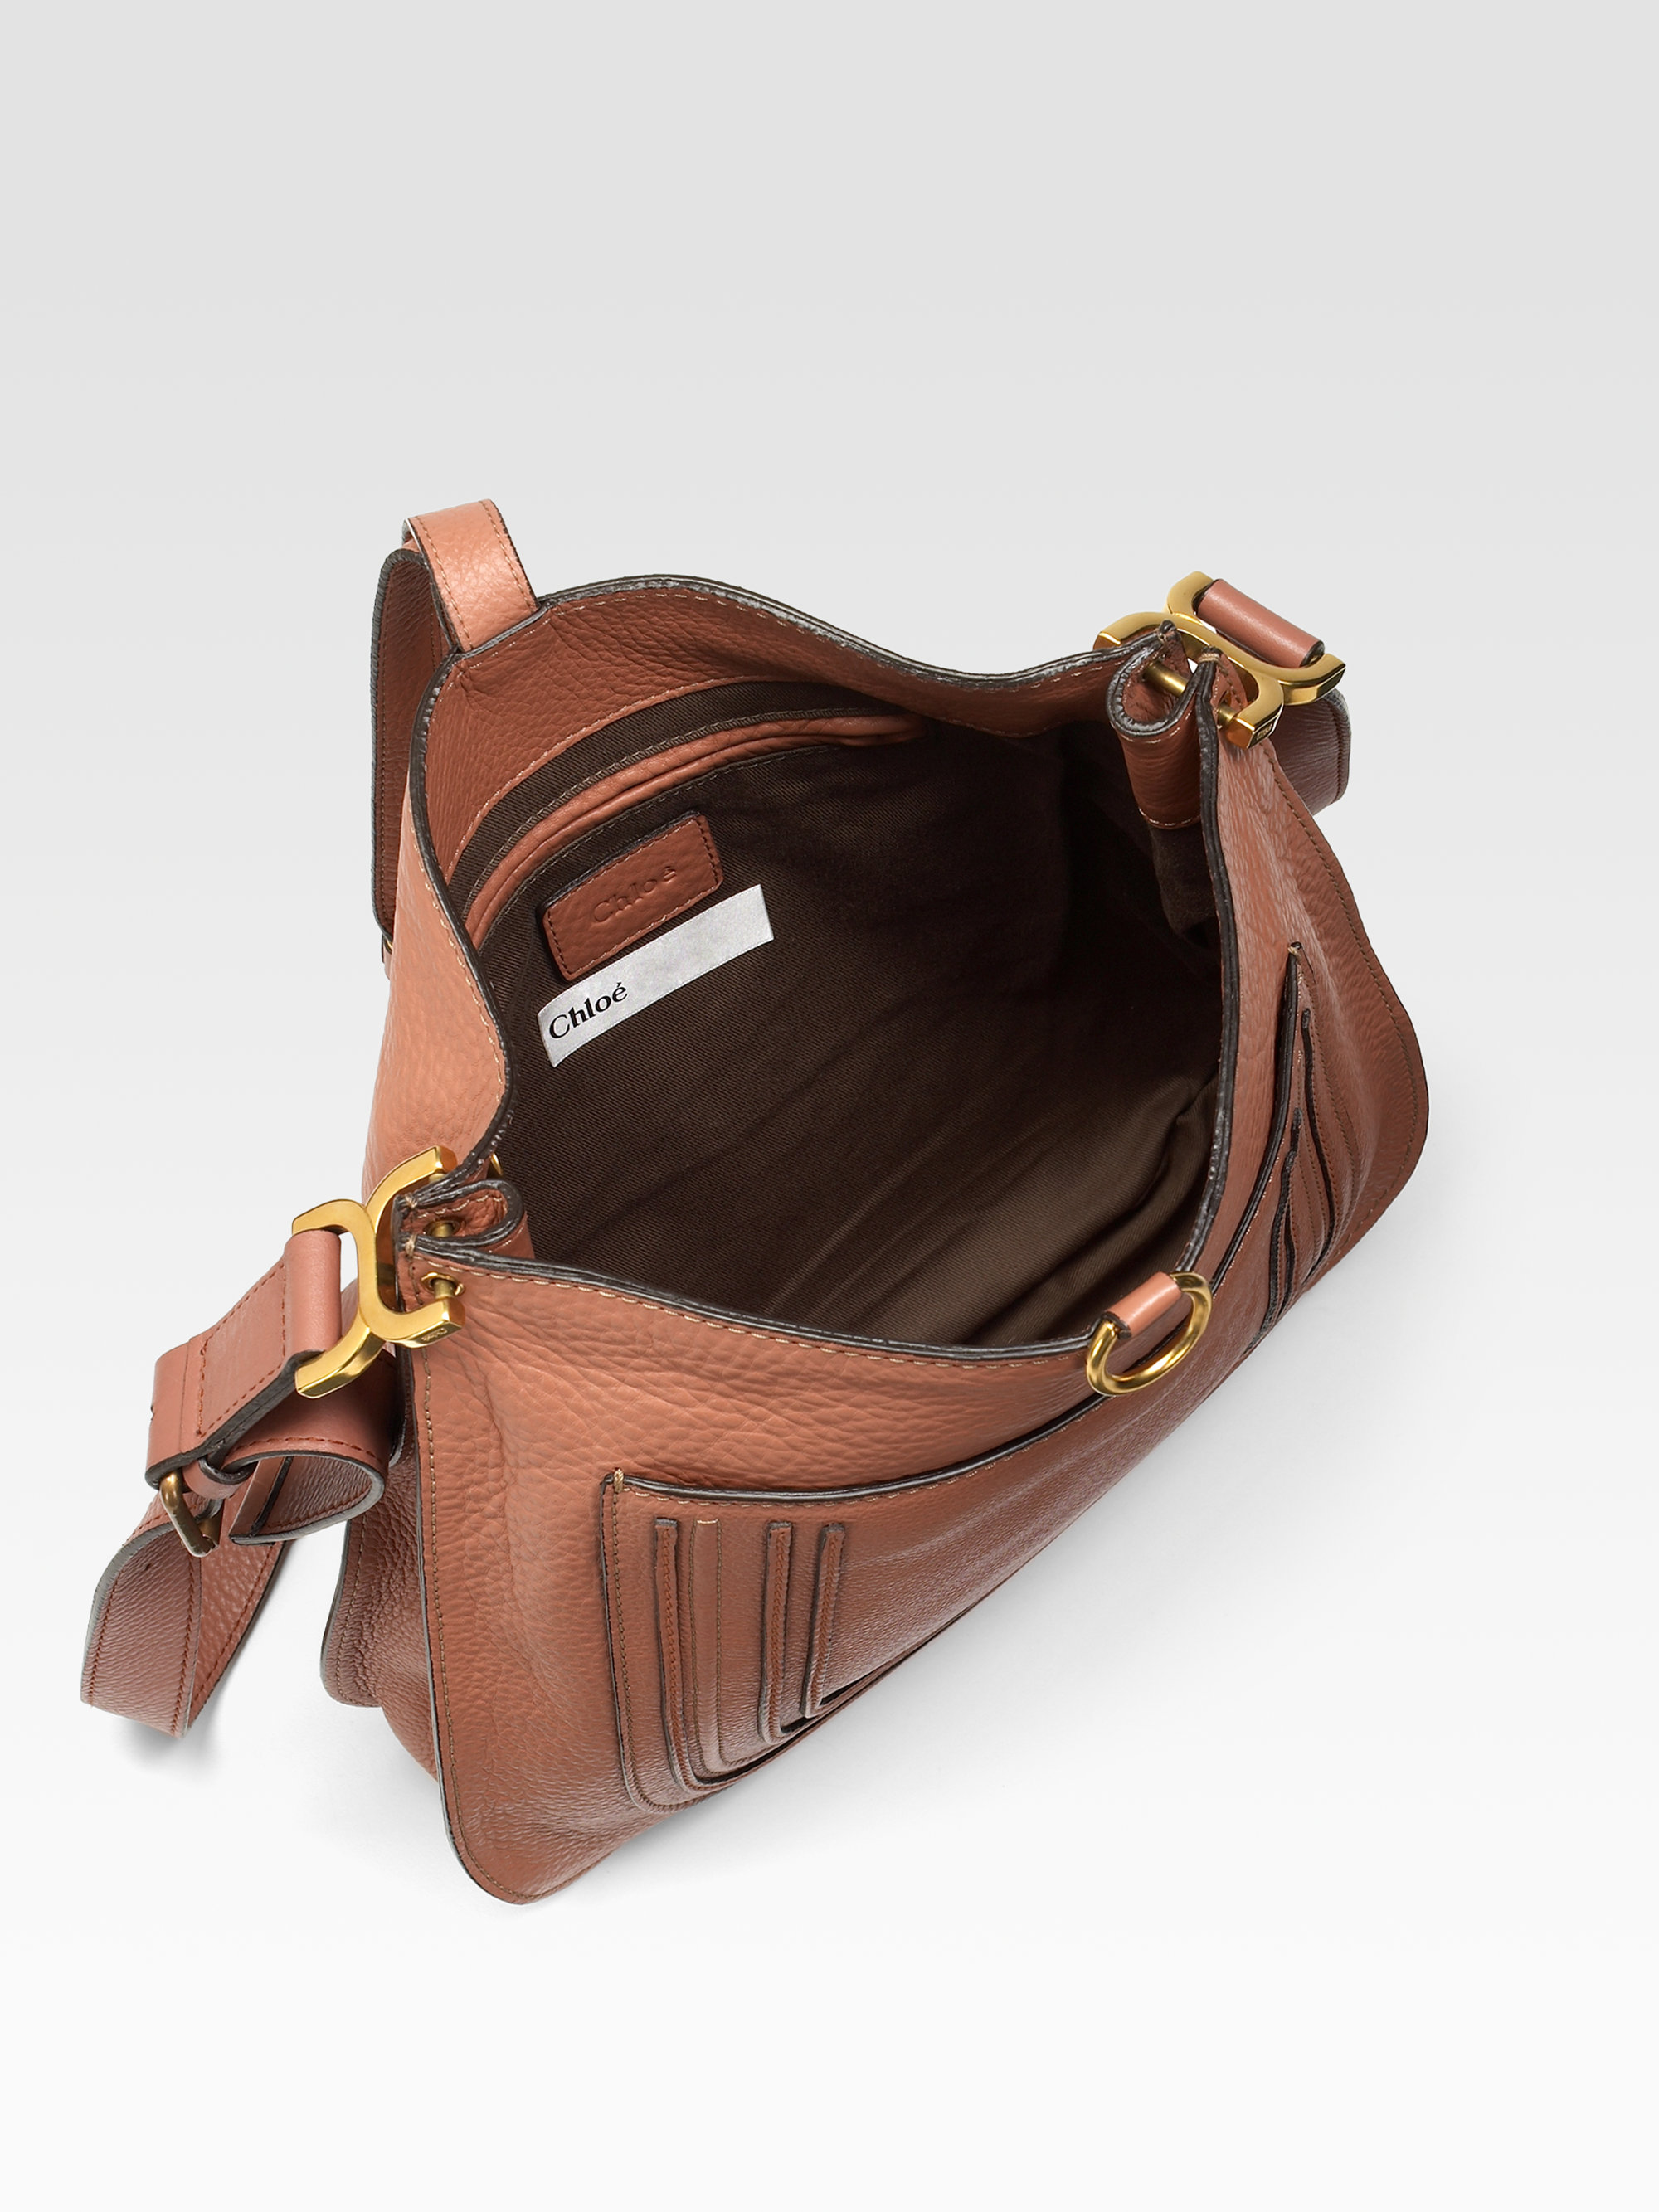 Chlo¨¦ Marcie New Leather Messenger Bag in Brown (clay)   Lyst